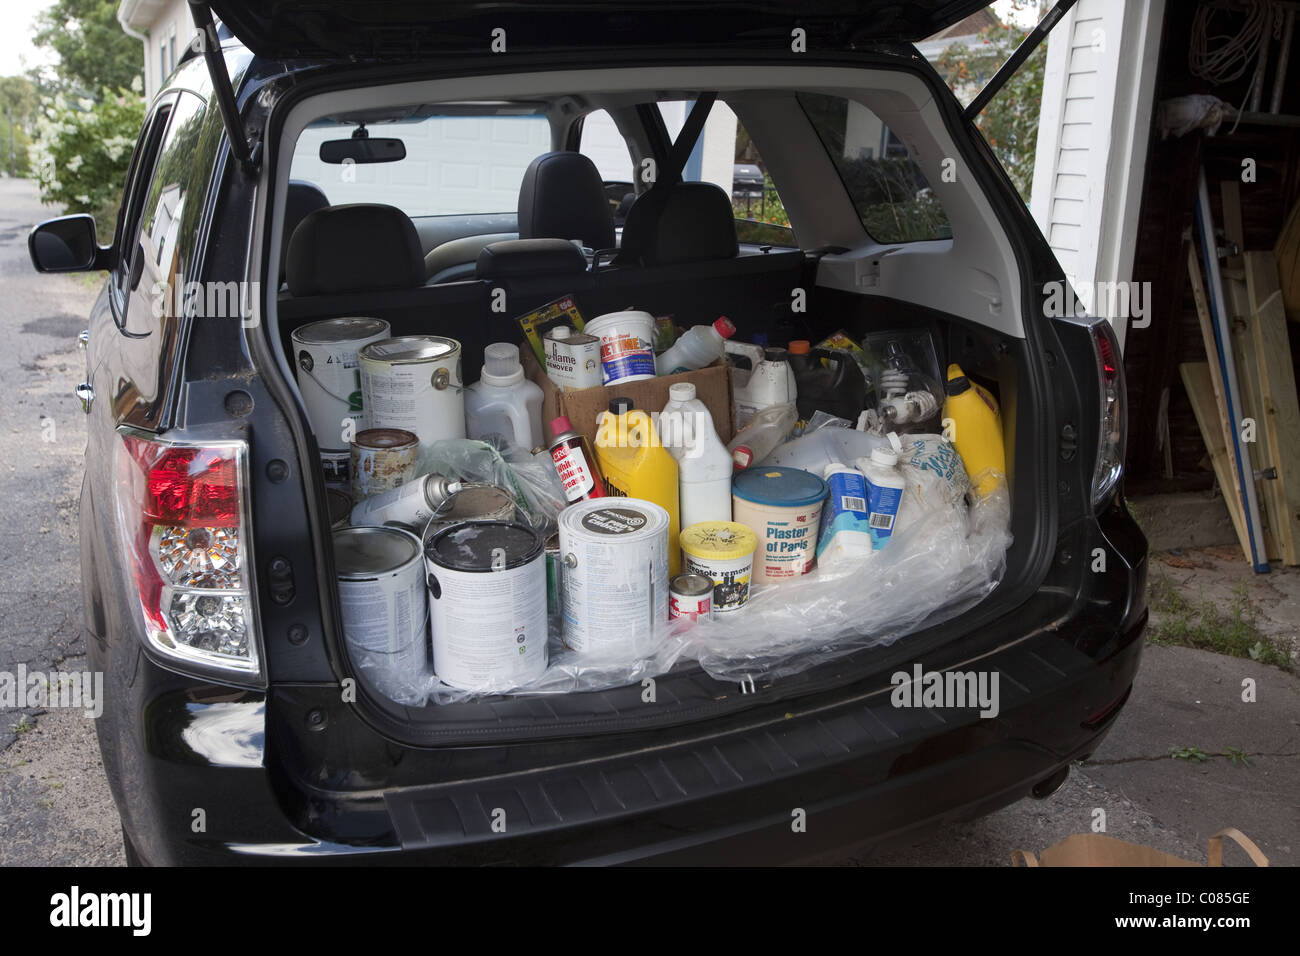 Containers of toxic and hazardous household chemicals being taken to a designated recycler - Stock Image